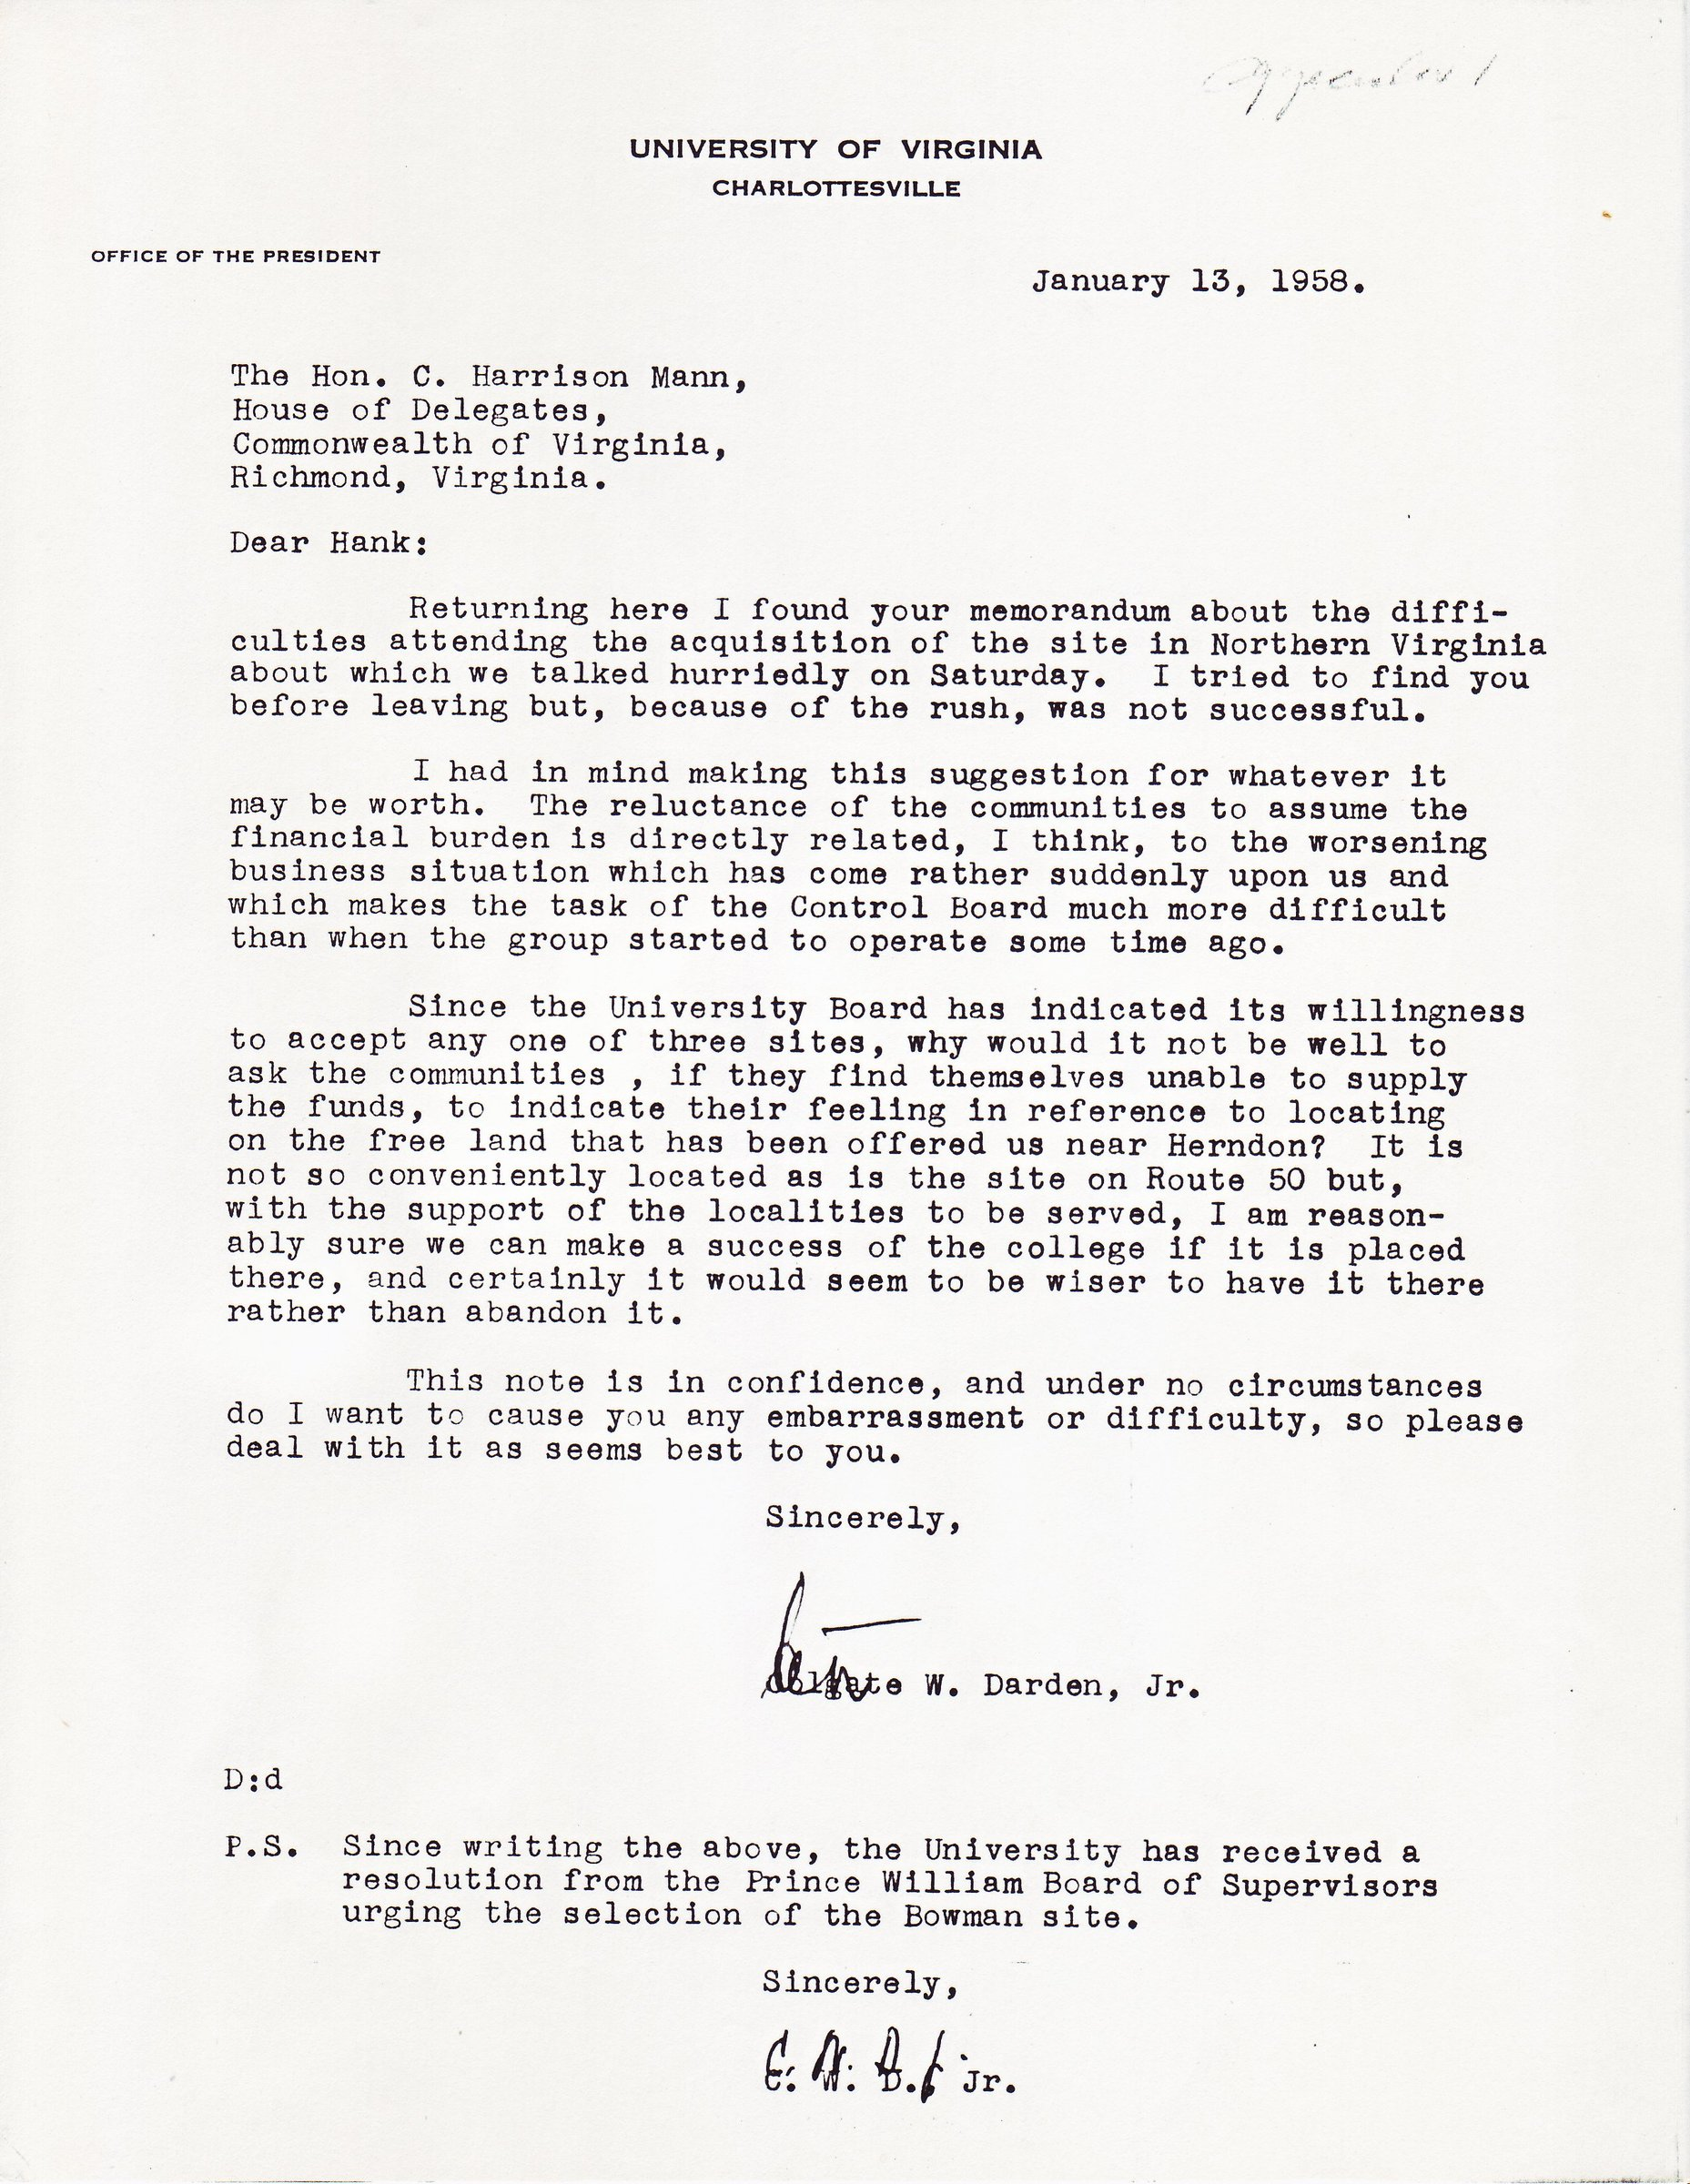 Colgate W. Darden, Jr. to C. Harrison Mann, January 13, 1958.